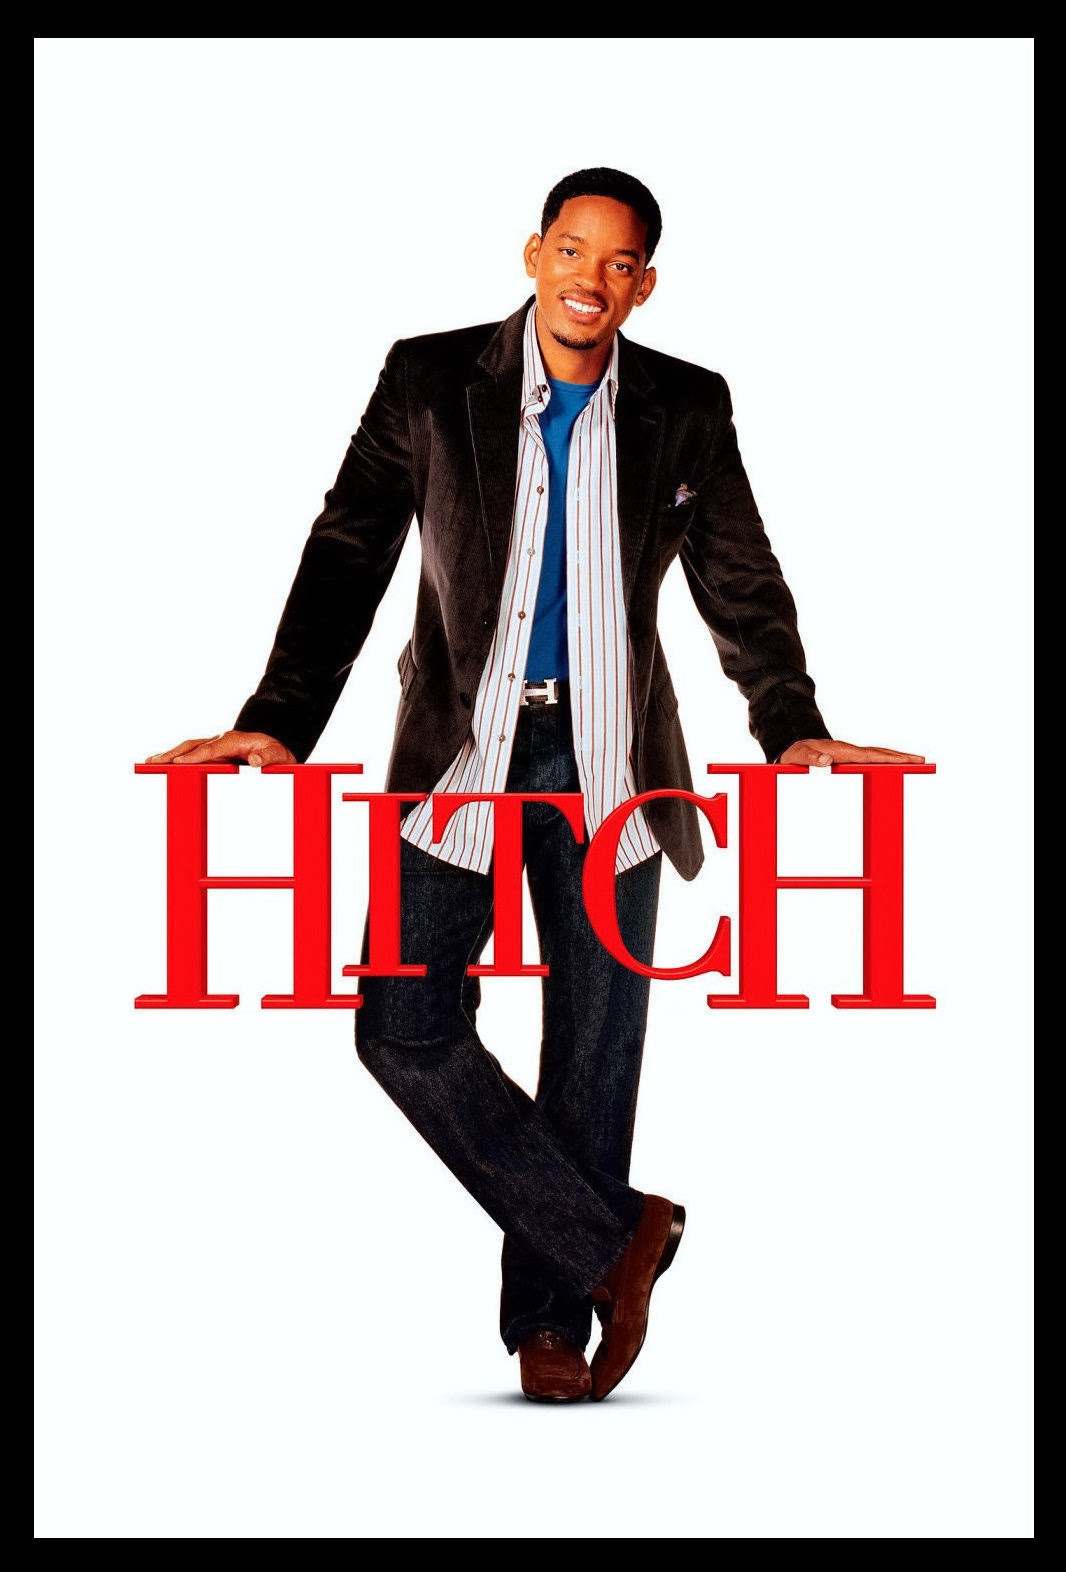 From The Movie Hitch Starring Will Smith Perseverance Is Defined As Continuing In A Course Of Action Without Regard To Discouragement Opposition Or